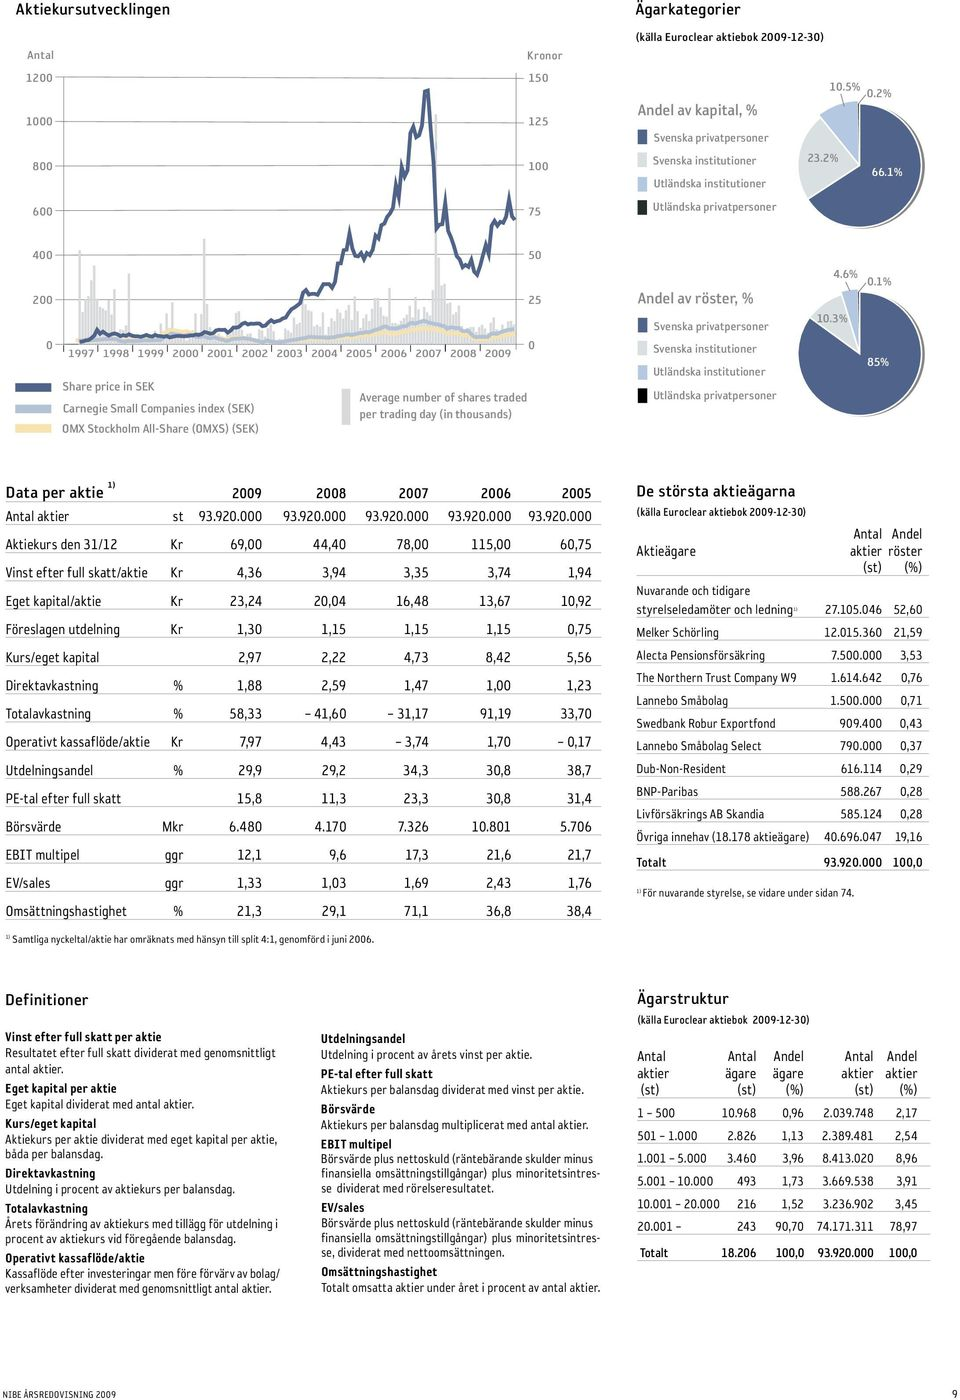 1% Utländska institutioner Utländska privatpersoner 400 50 200 0 1997 1998 1999 2000 2001 2002 Share price in SEK Carnegie Small Companies index (SEK) OMX Stockholm All-Share (OMXS) (SEK) 2003 2004